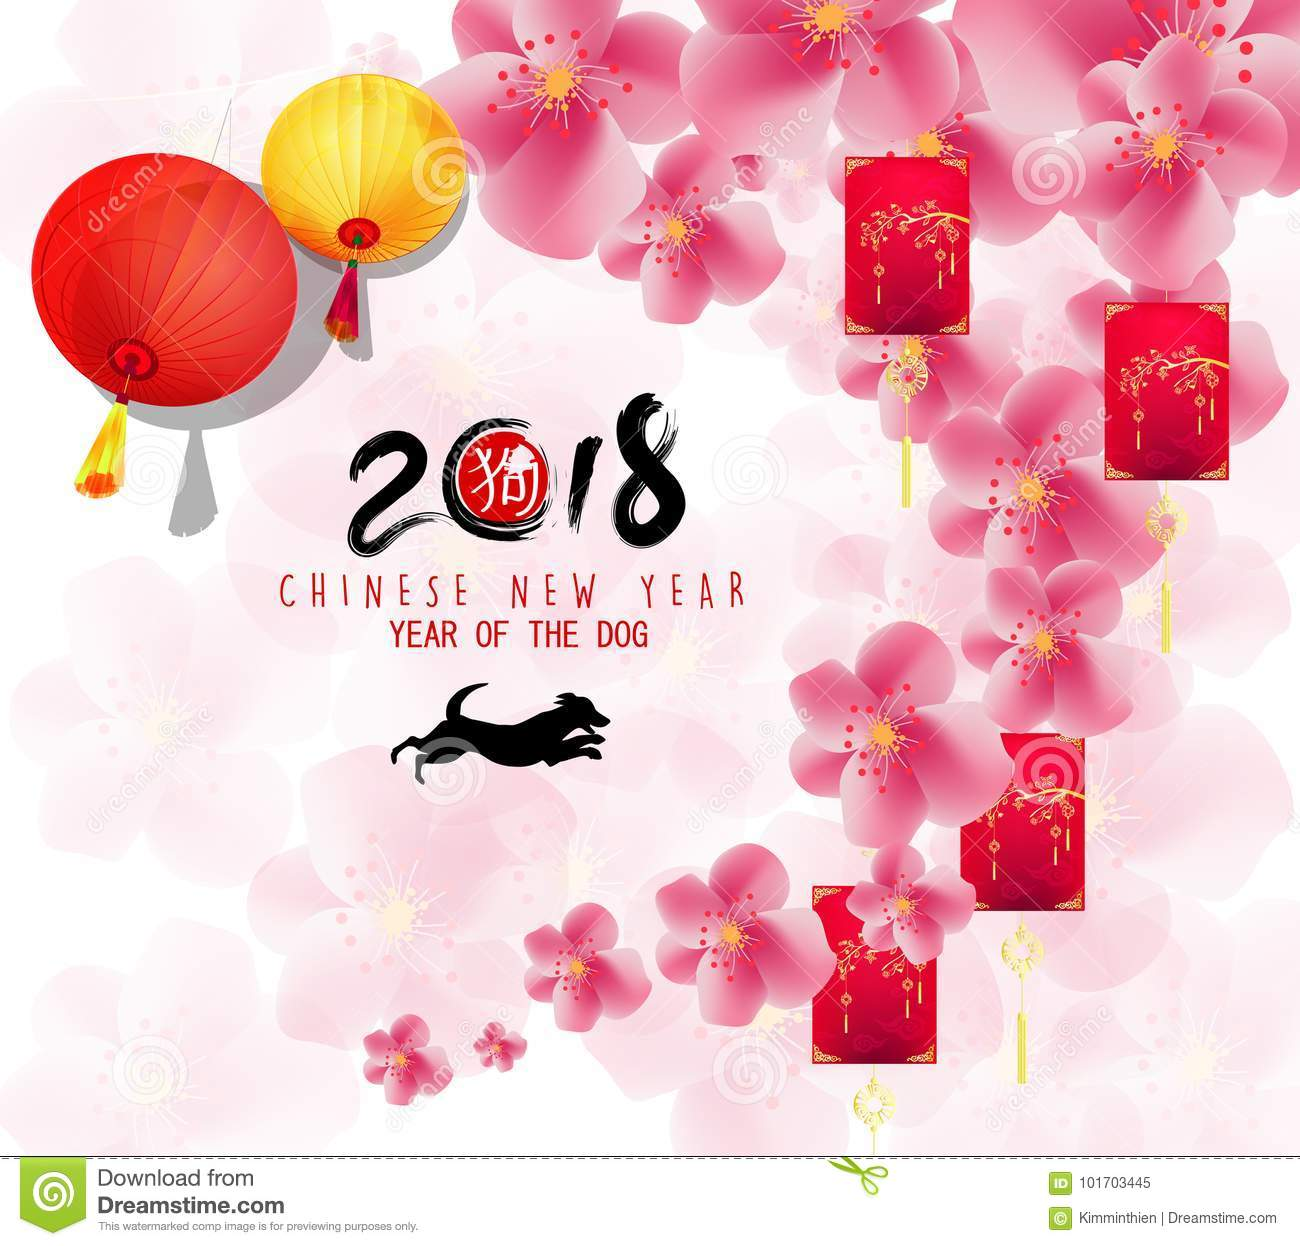 Happy new year 2018 greeting card chinese new year of ther dog happy new year 2018 greeting card chinese new year of ther dog stock vector illustration of chinese decoration 101703445 m4hsunfo